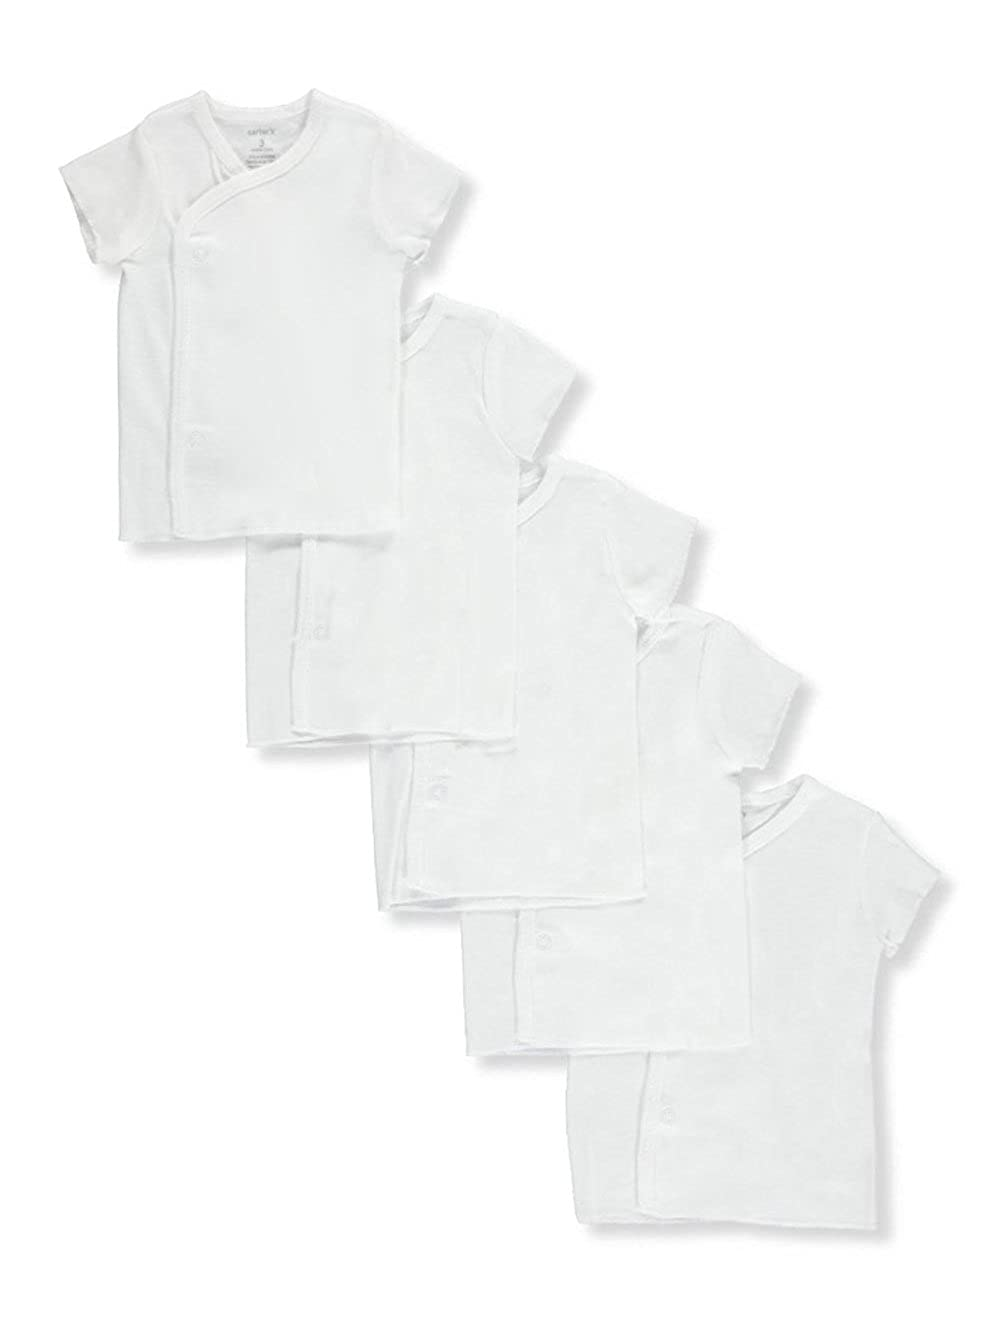 Carters Unisex Baby 5-Pack Short Sleeve Side Snap Tee, White, 24M Carter's